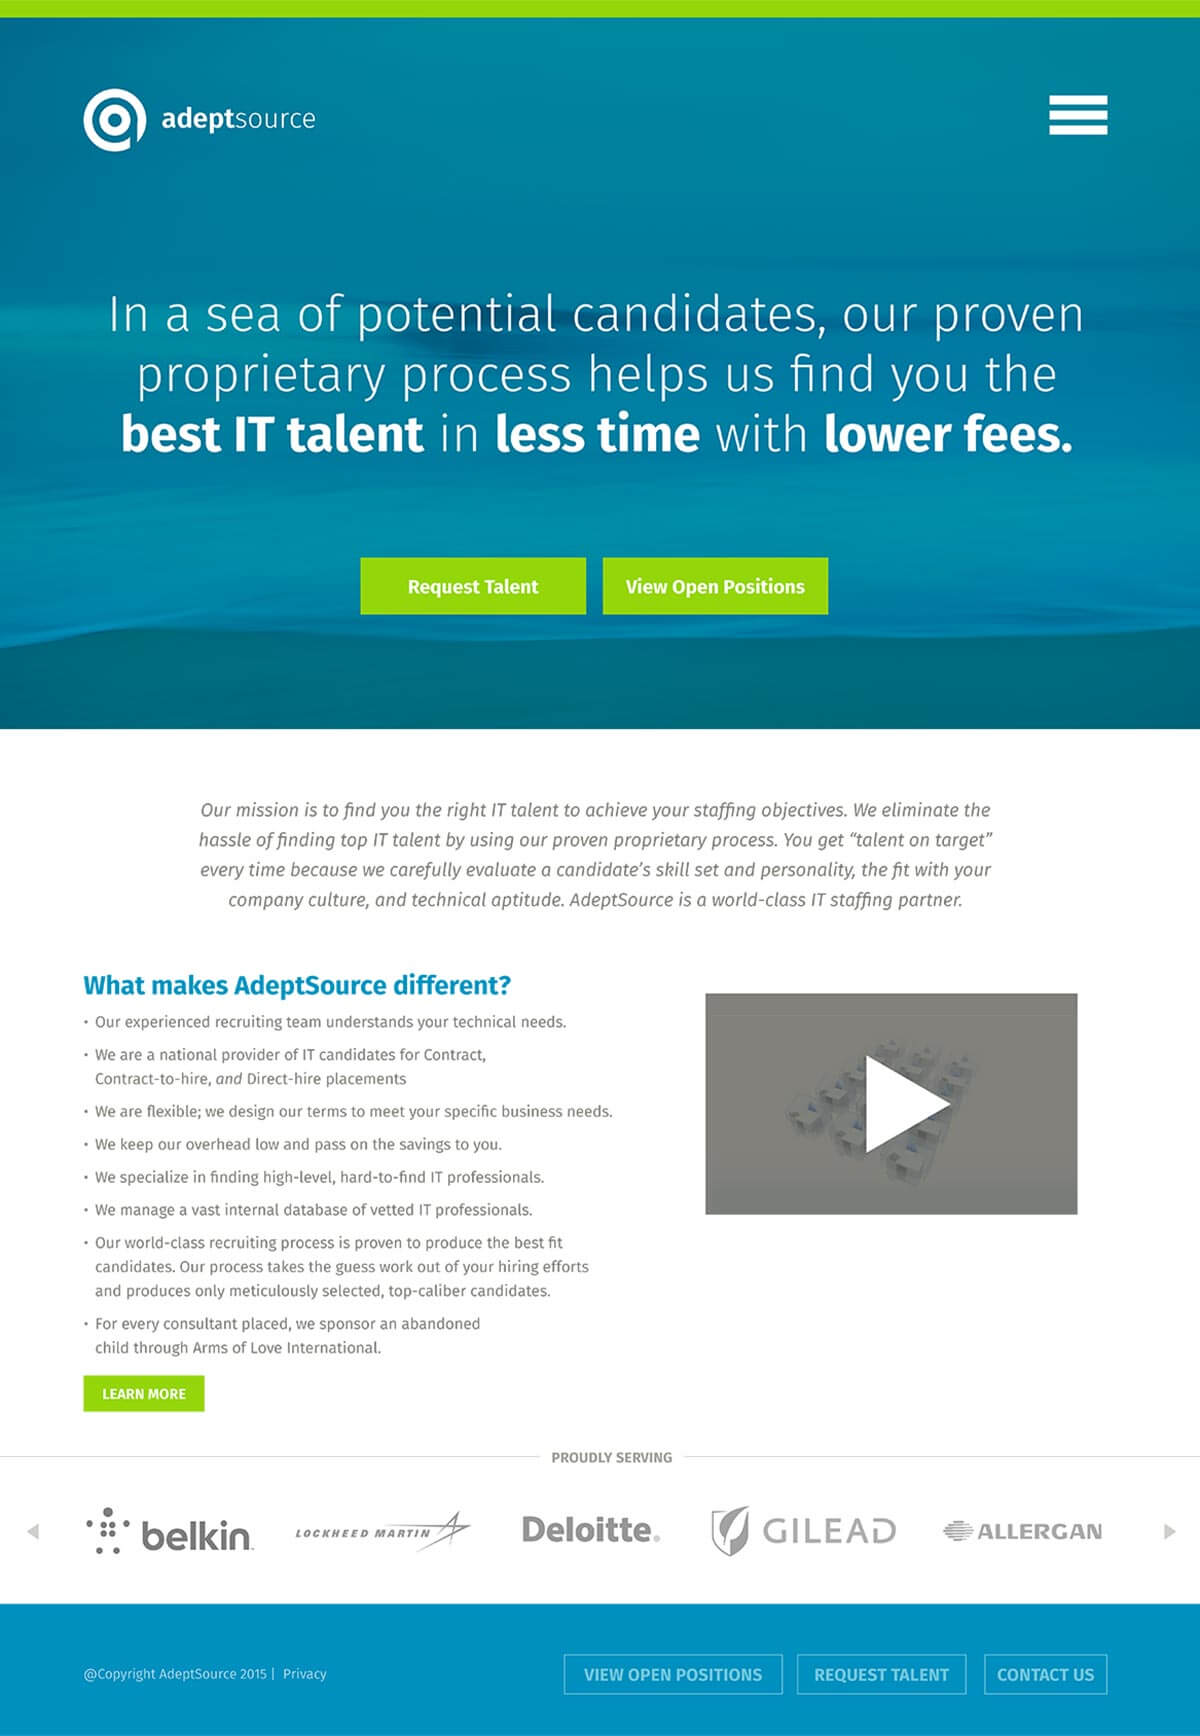 Adeptsource website home page